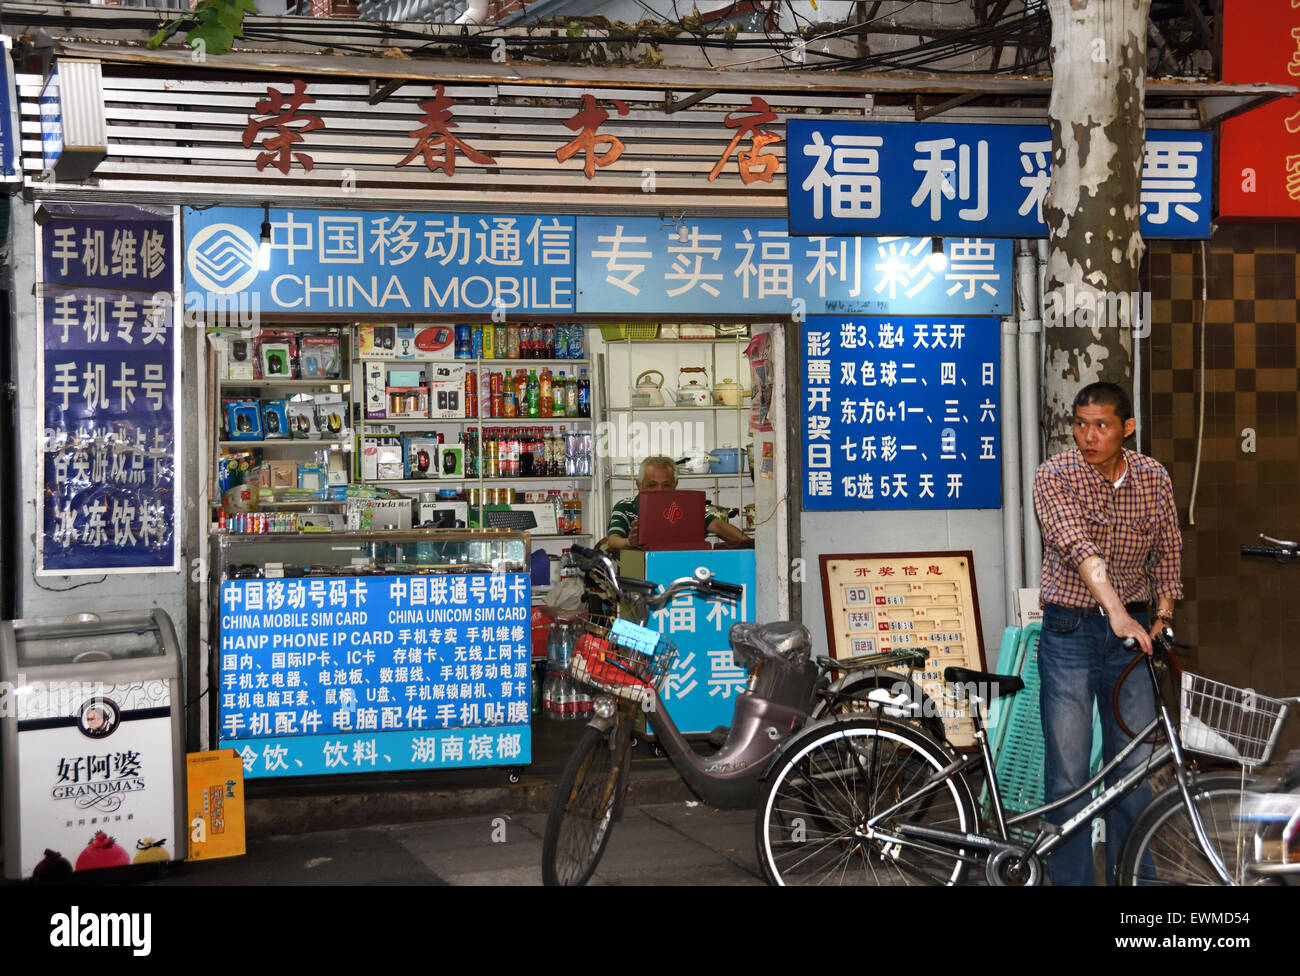 China Mobile shop in Old Shanghai The narrow lanes that